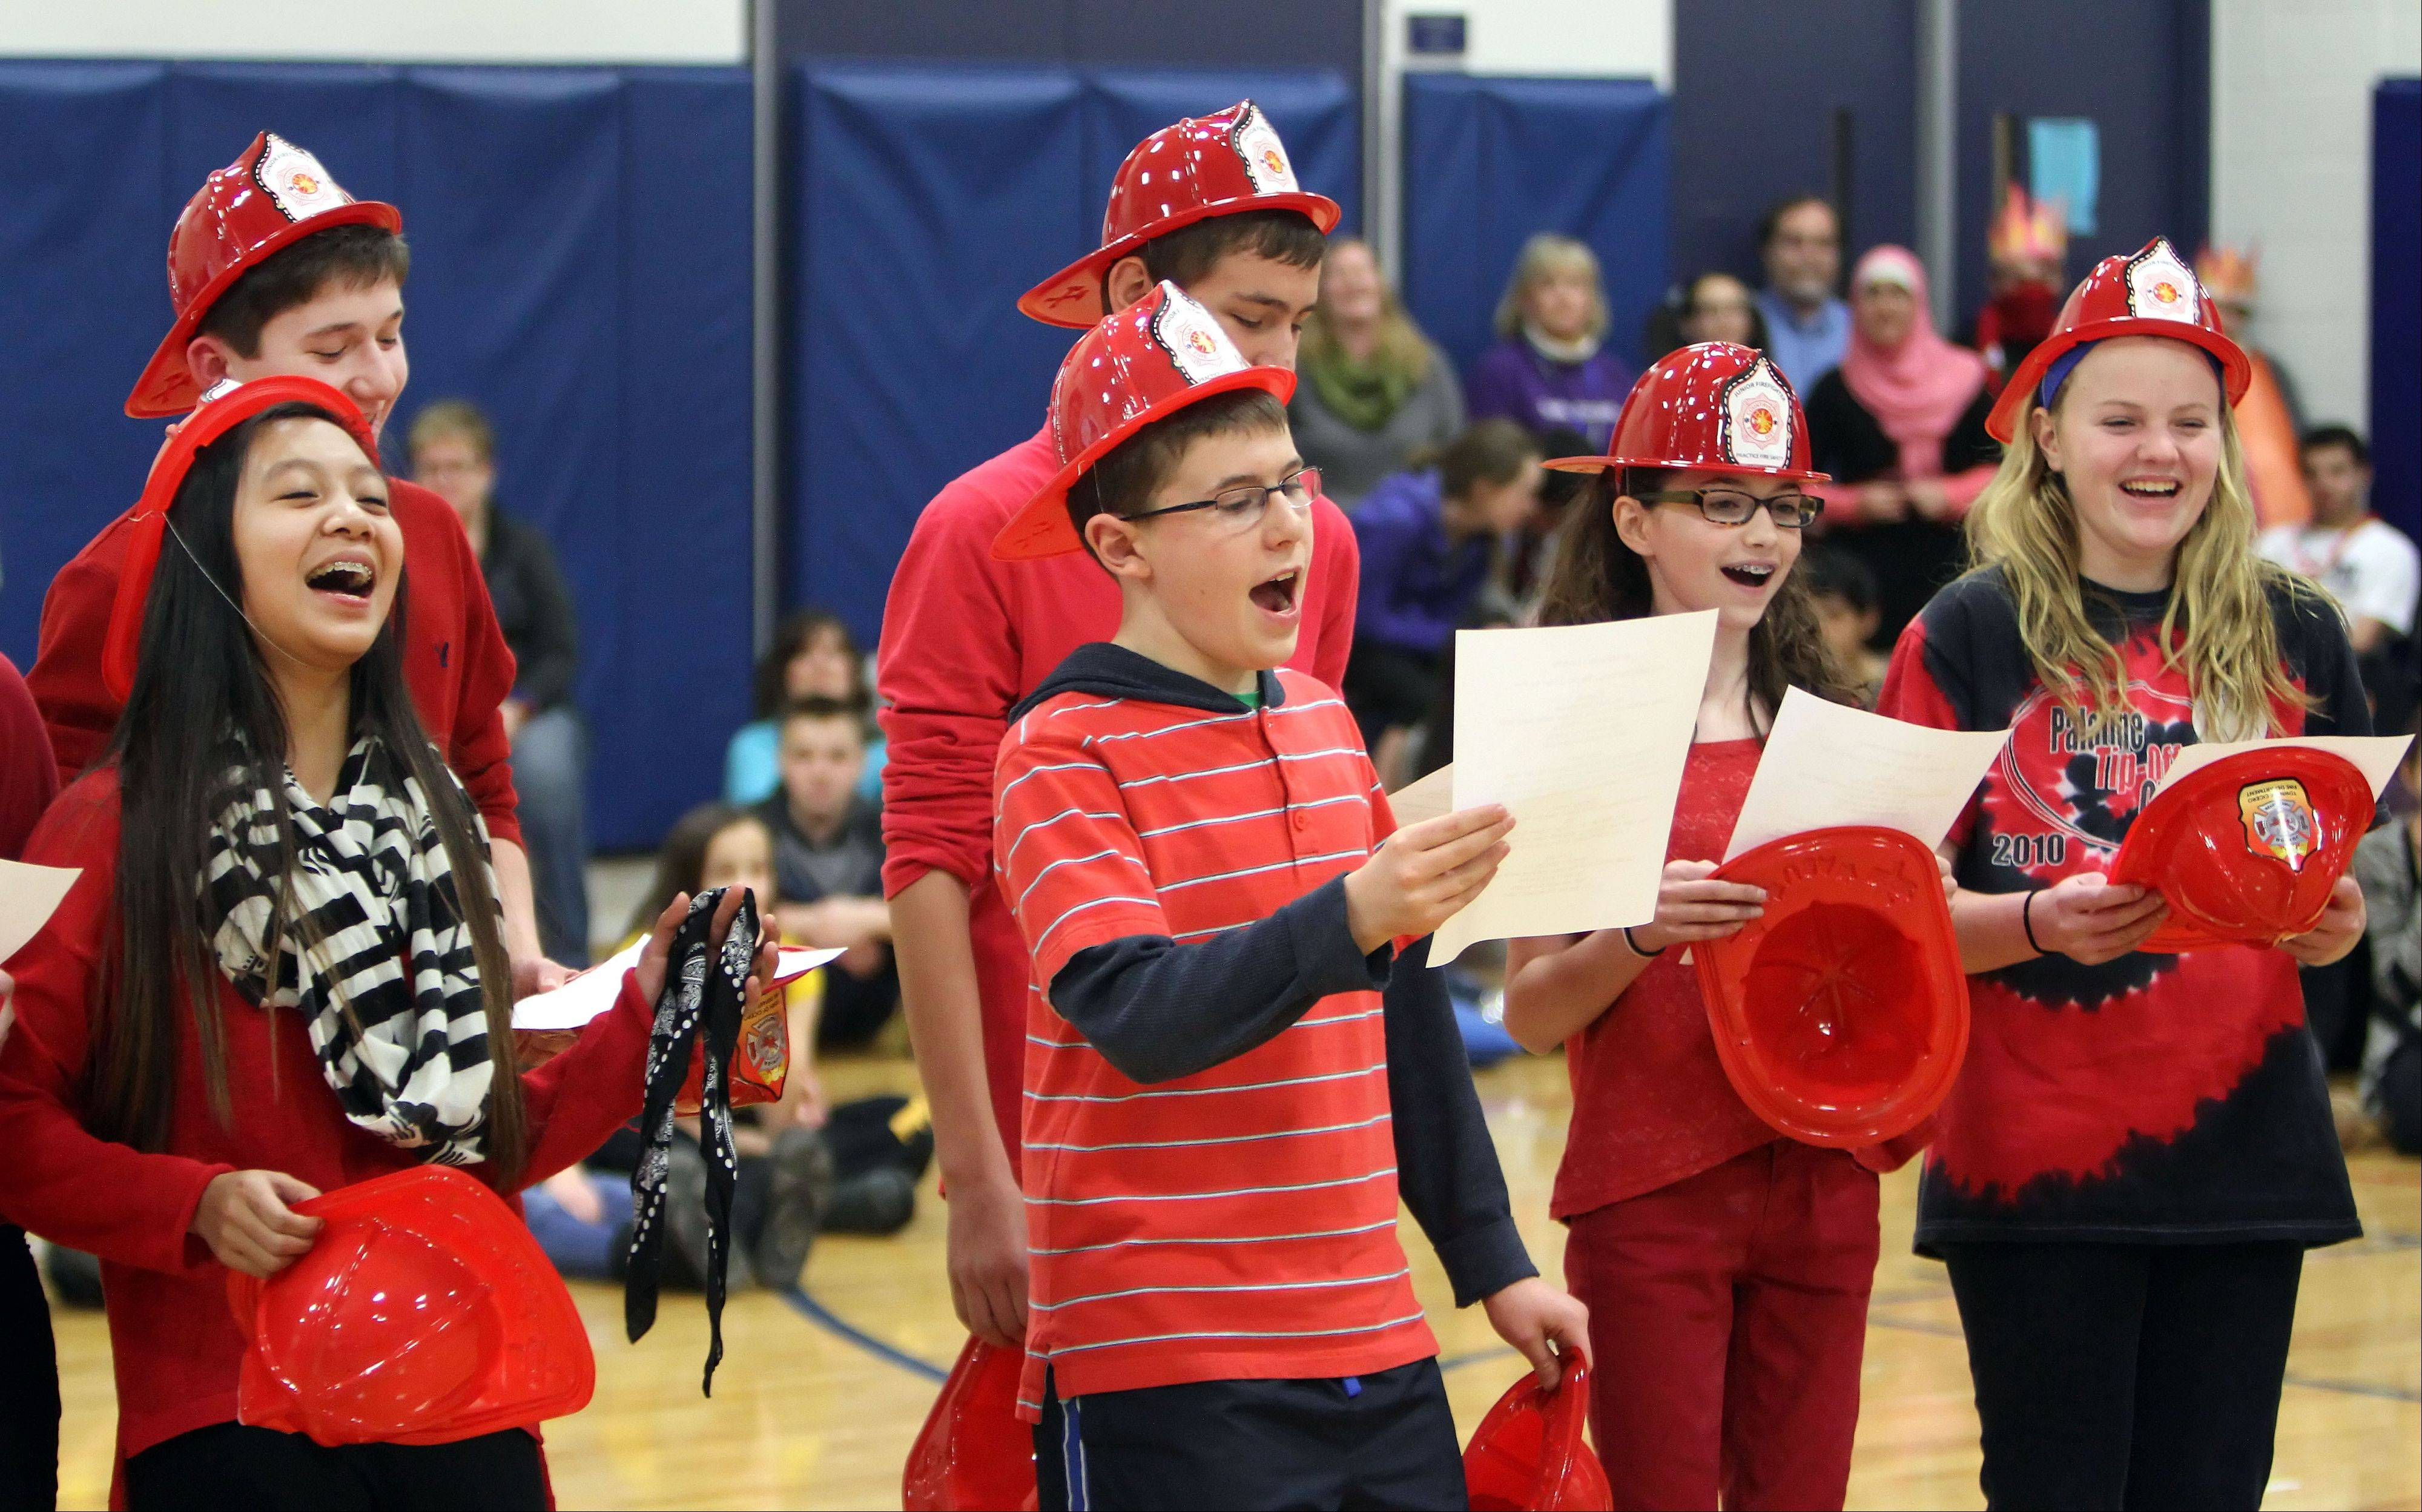 Eighth-graders at Hawthorn Middle School North participate in skit contest for fire safety and burn prevention during an all-school assembly Friday in Vernon Hills.